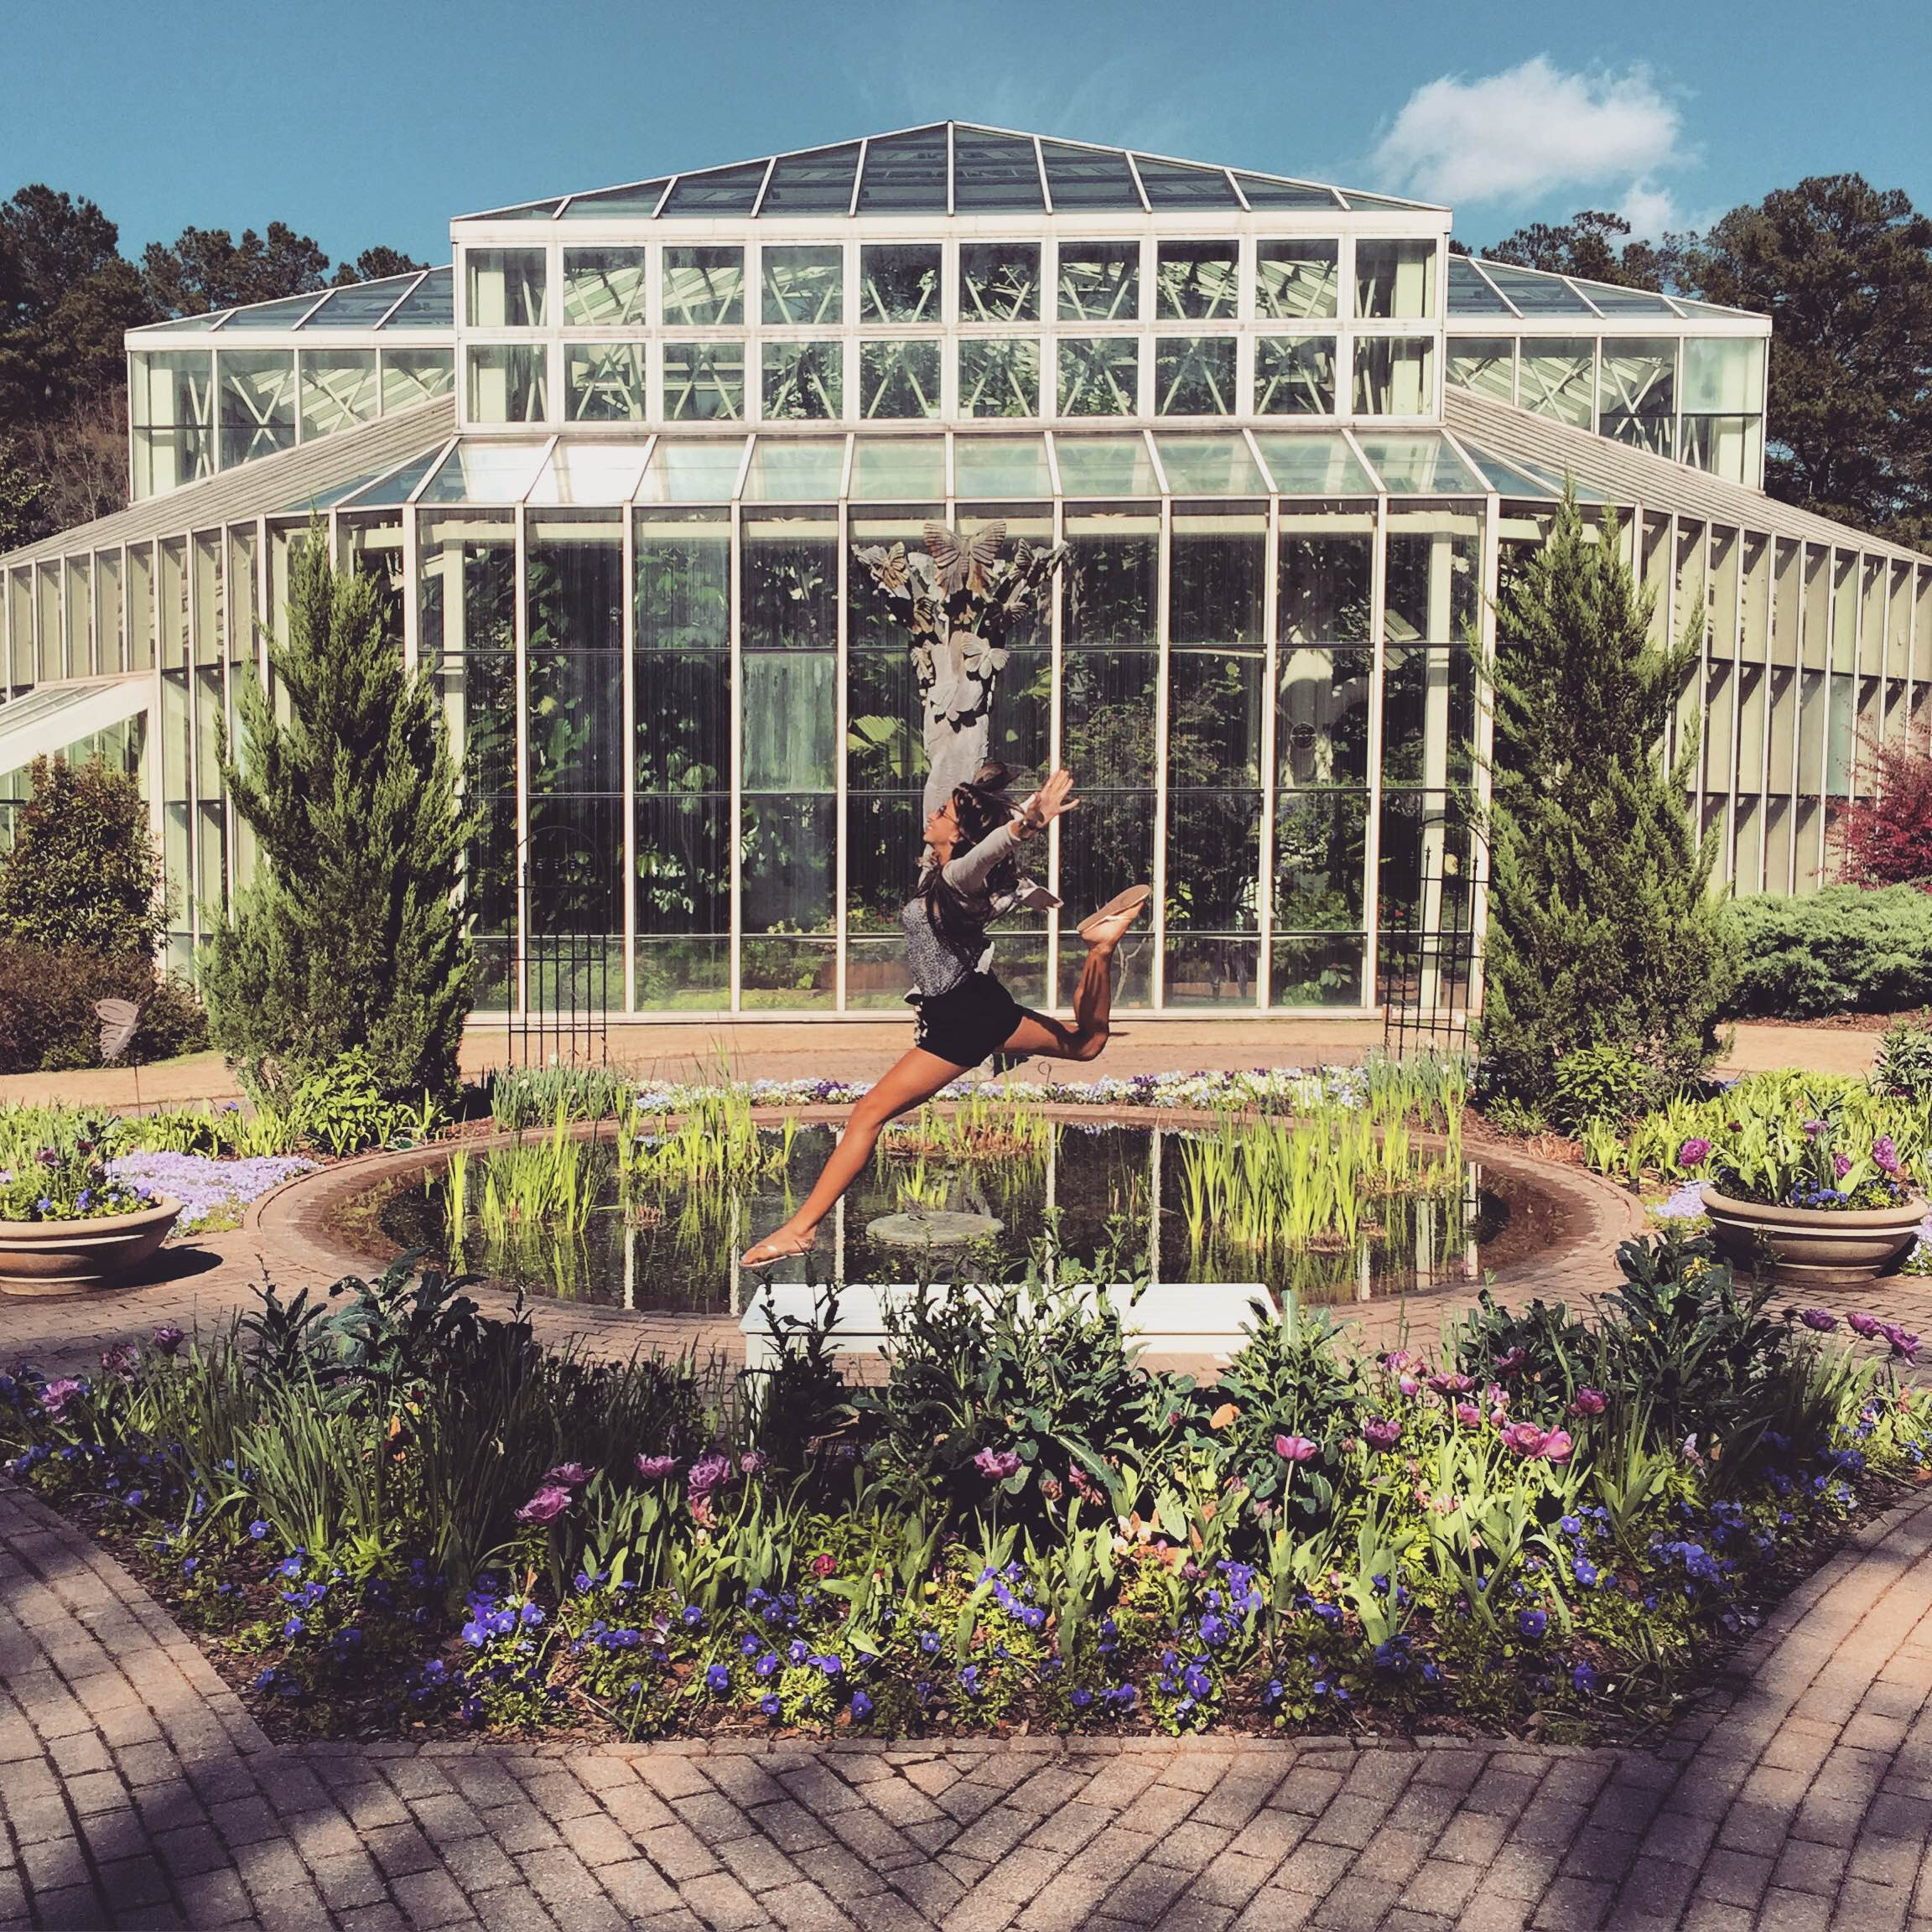 The Author Takes A Leap At The Cecil B. Day Butterfly Center